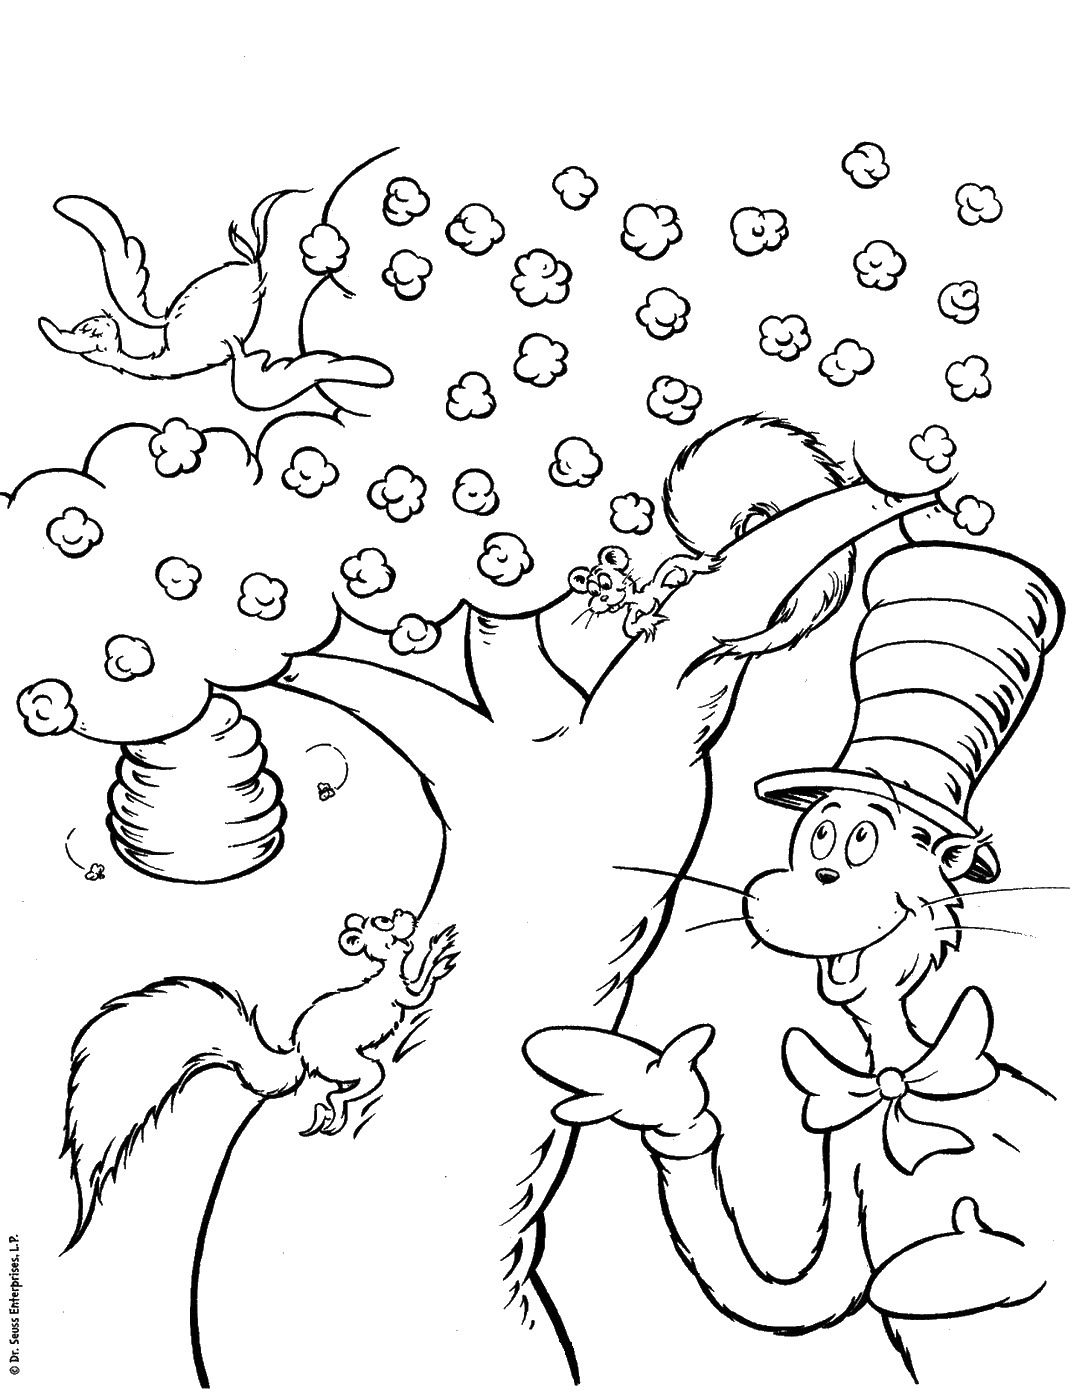 cat-in-the-hat-coloring-page-0004-q1